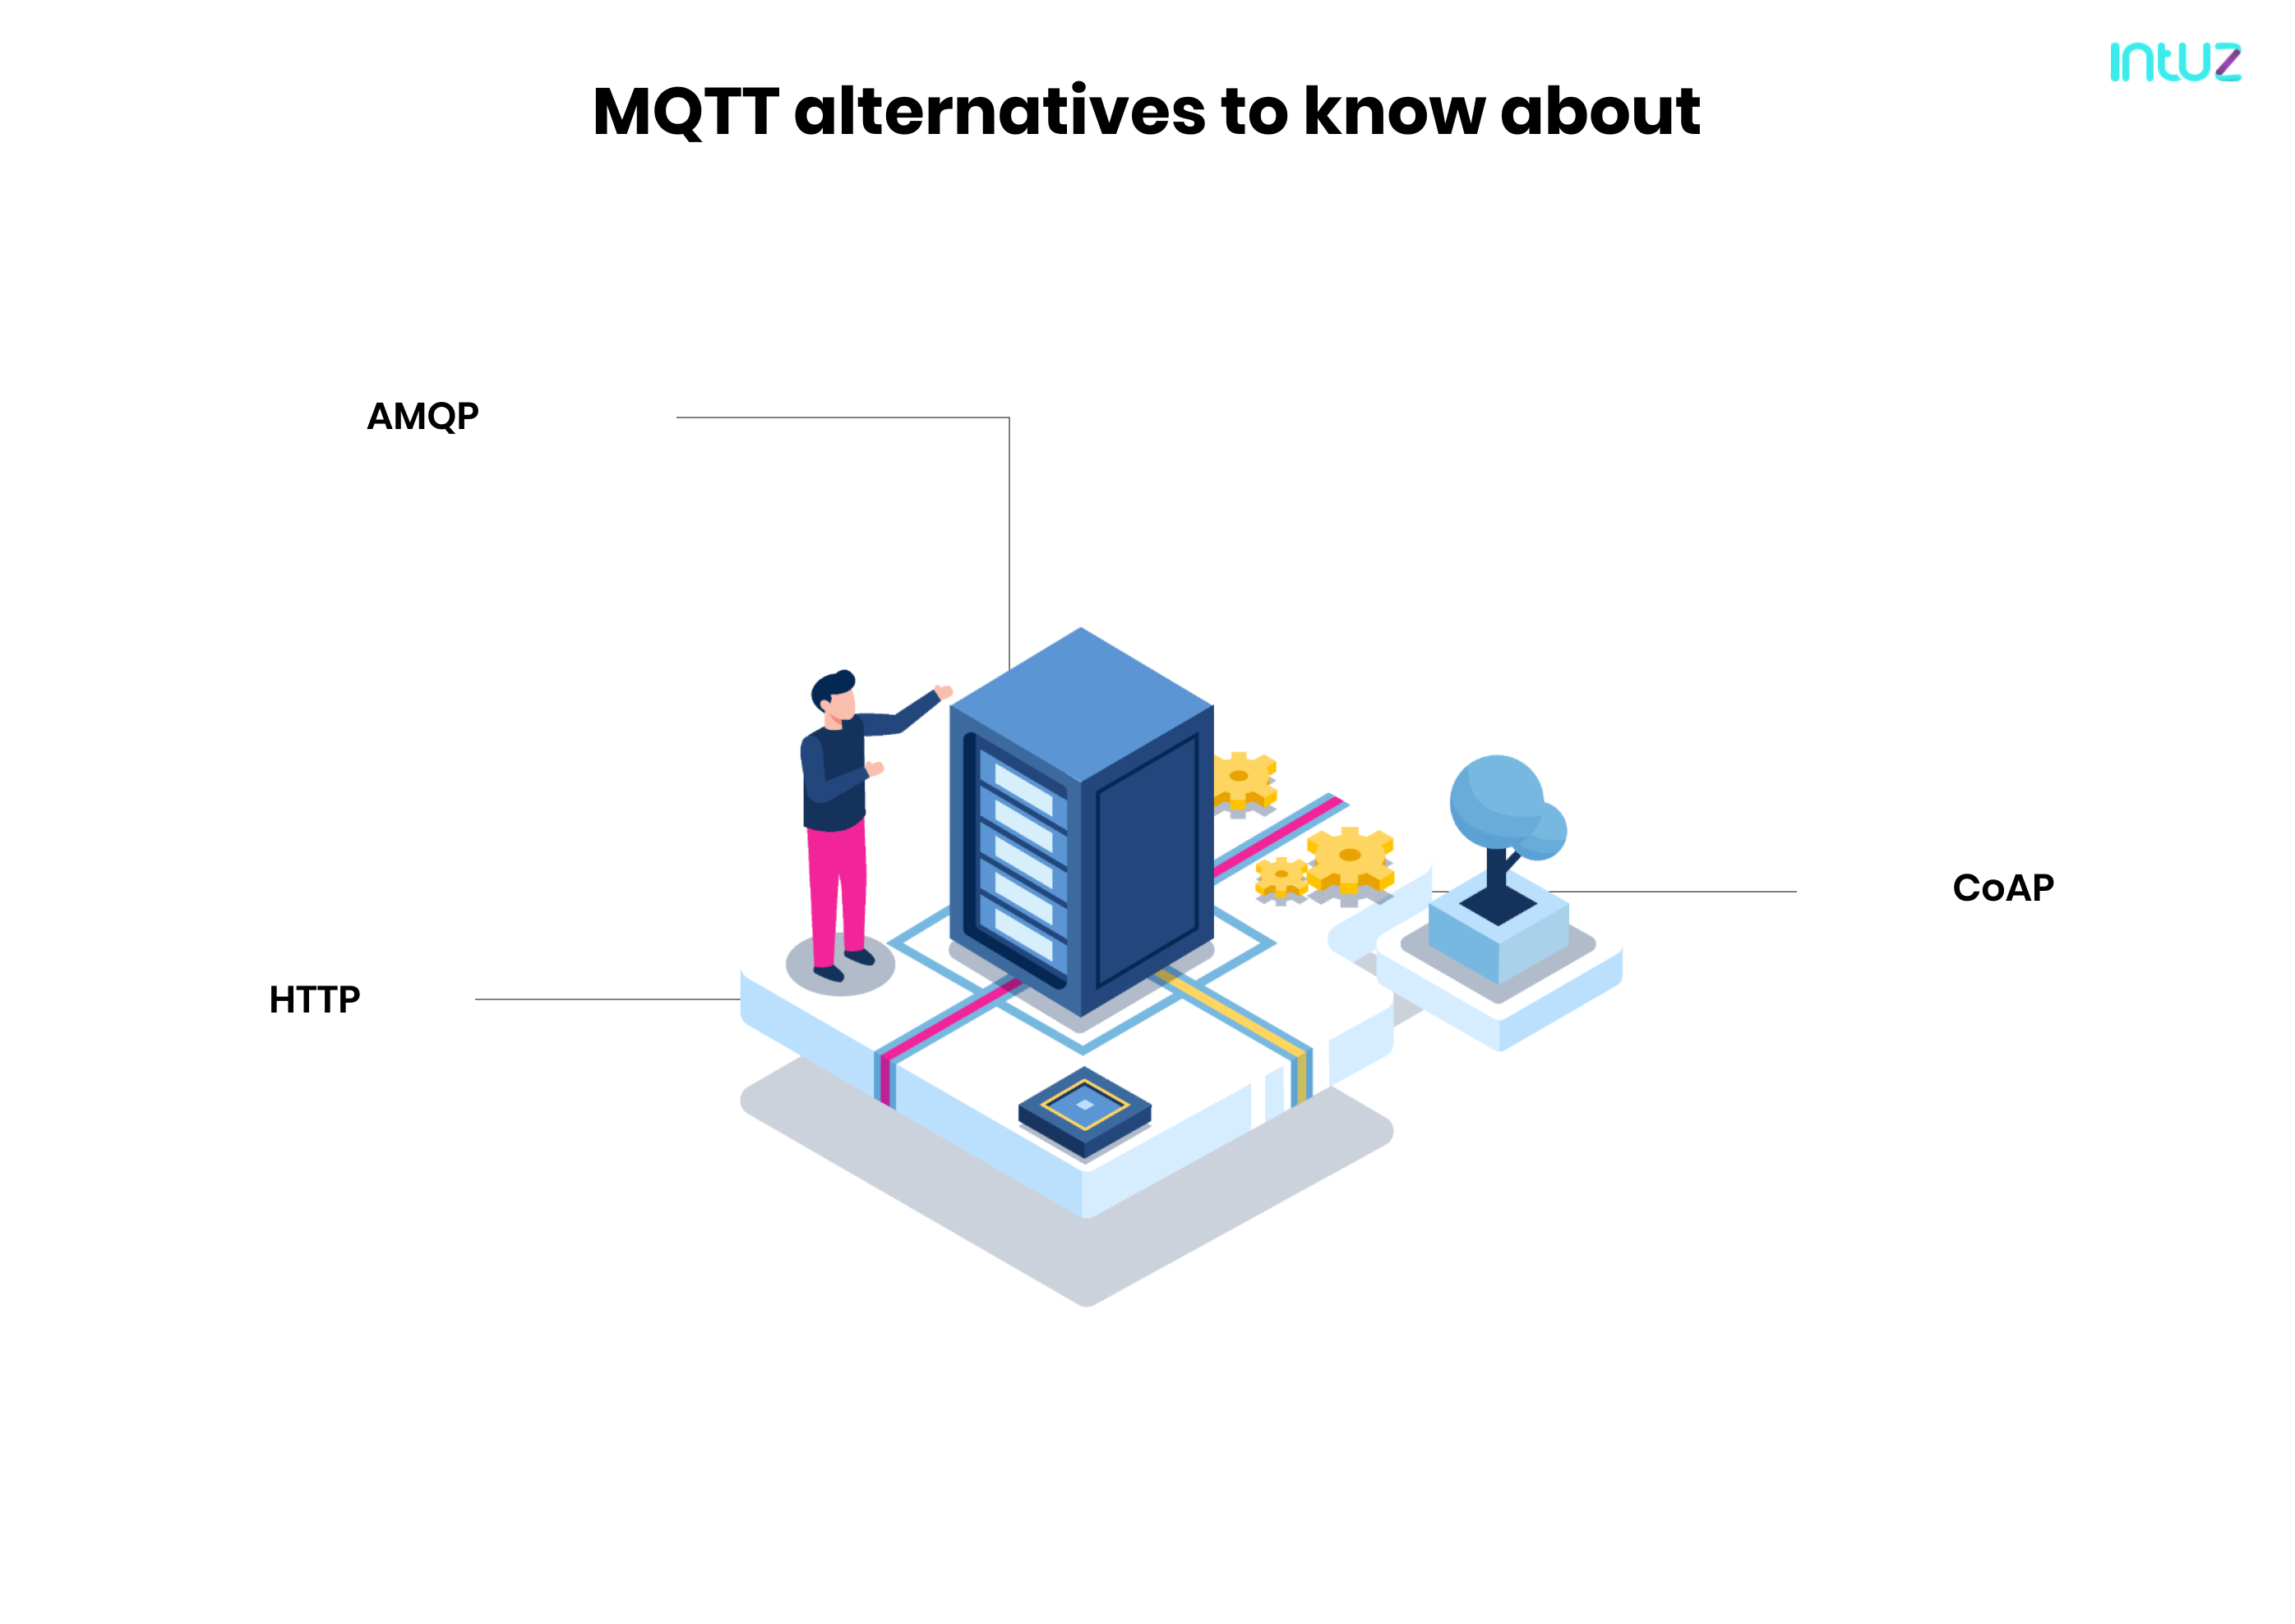 MQTT alternatives to know about